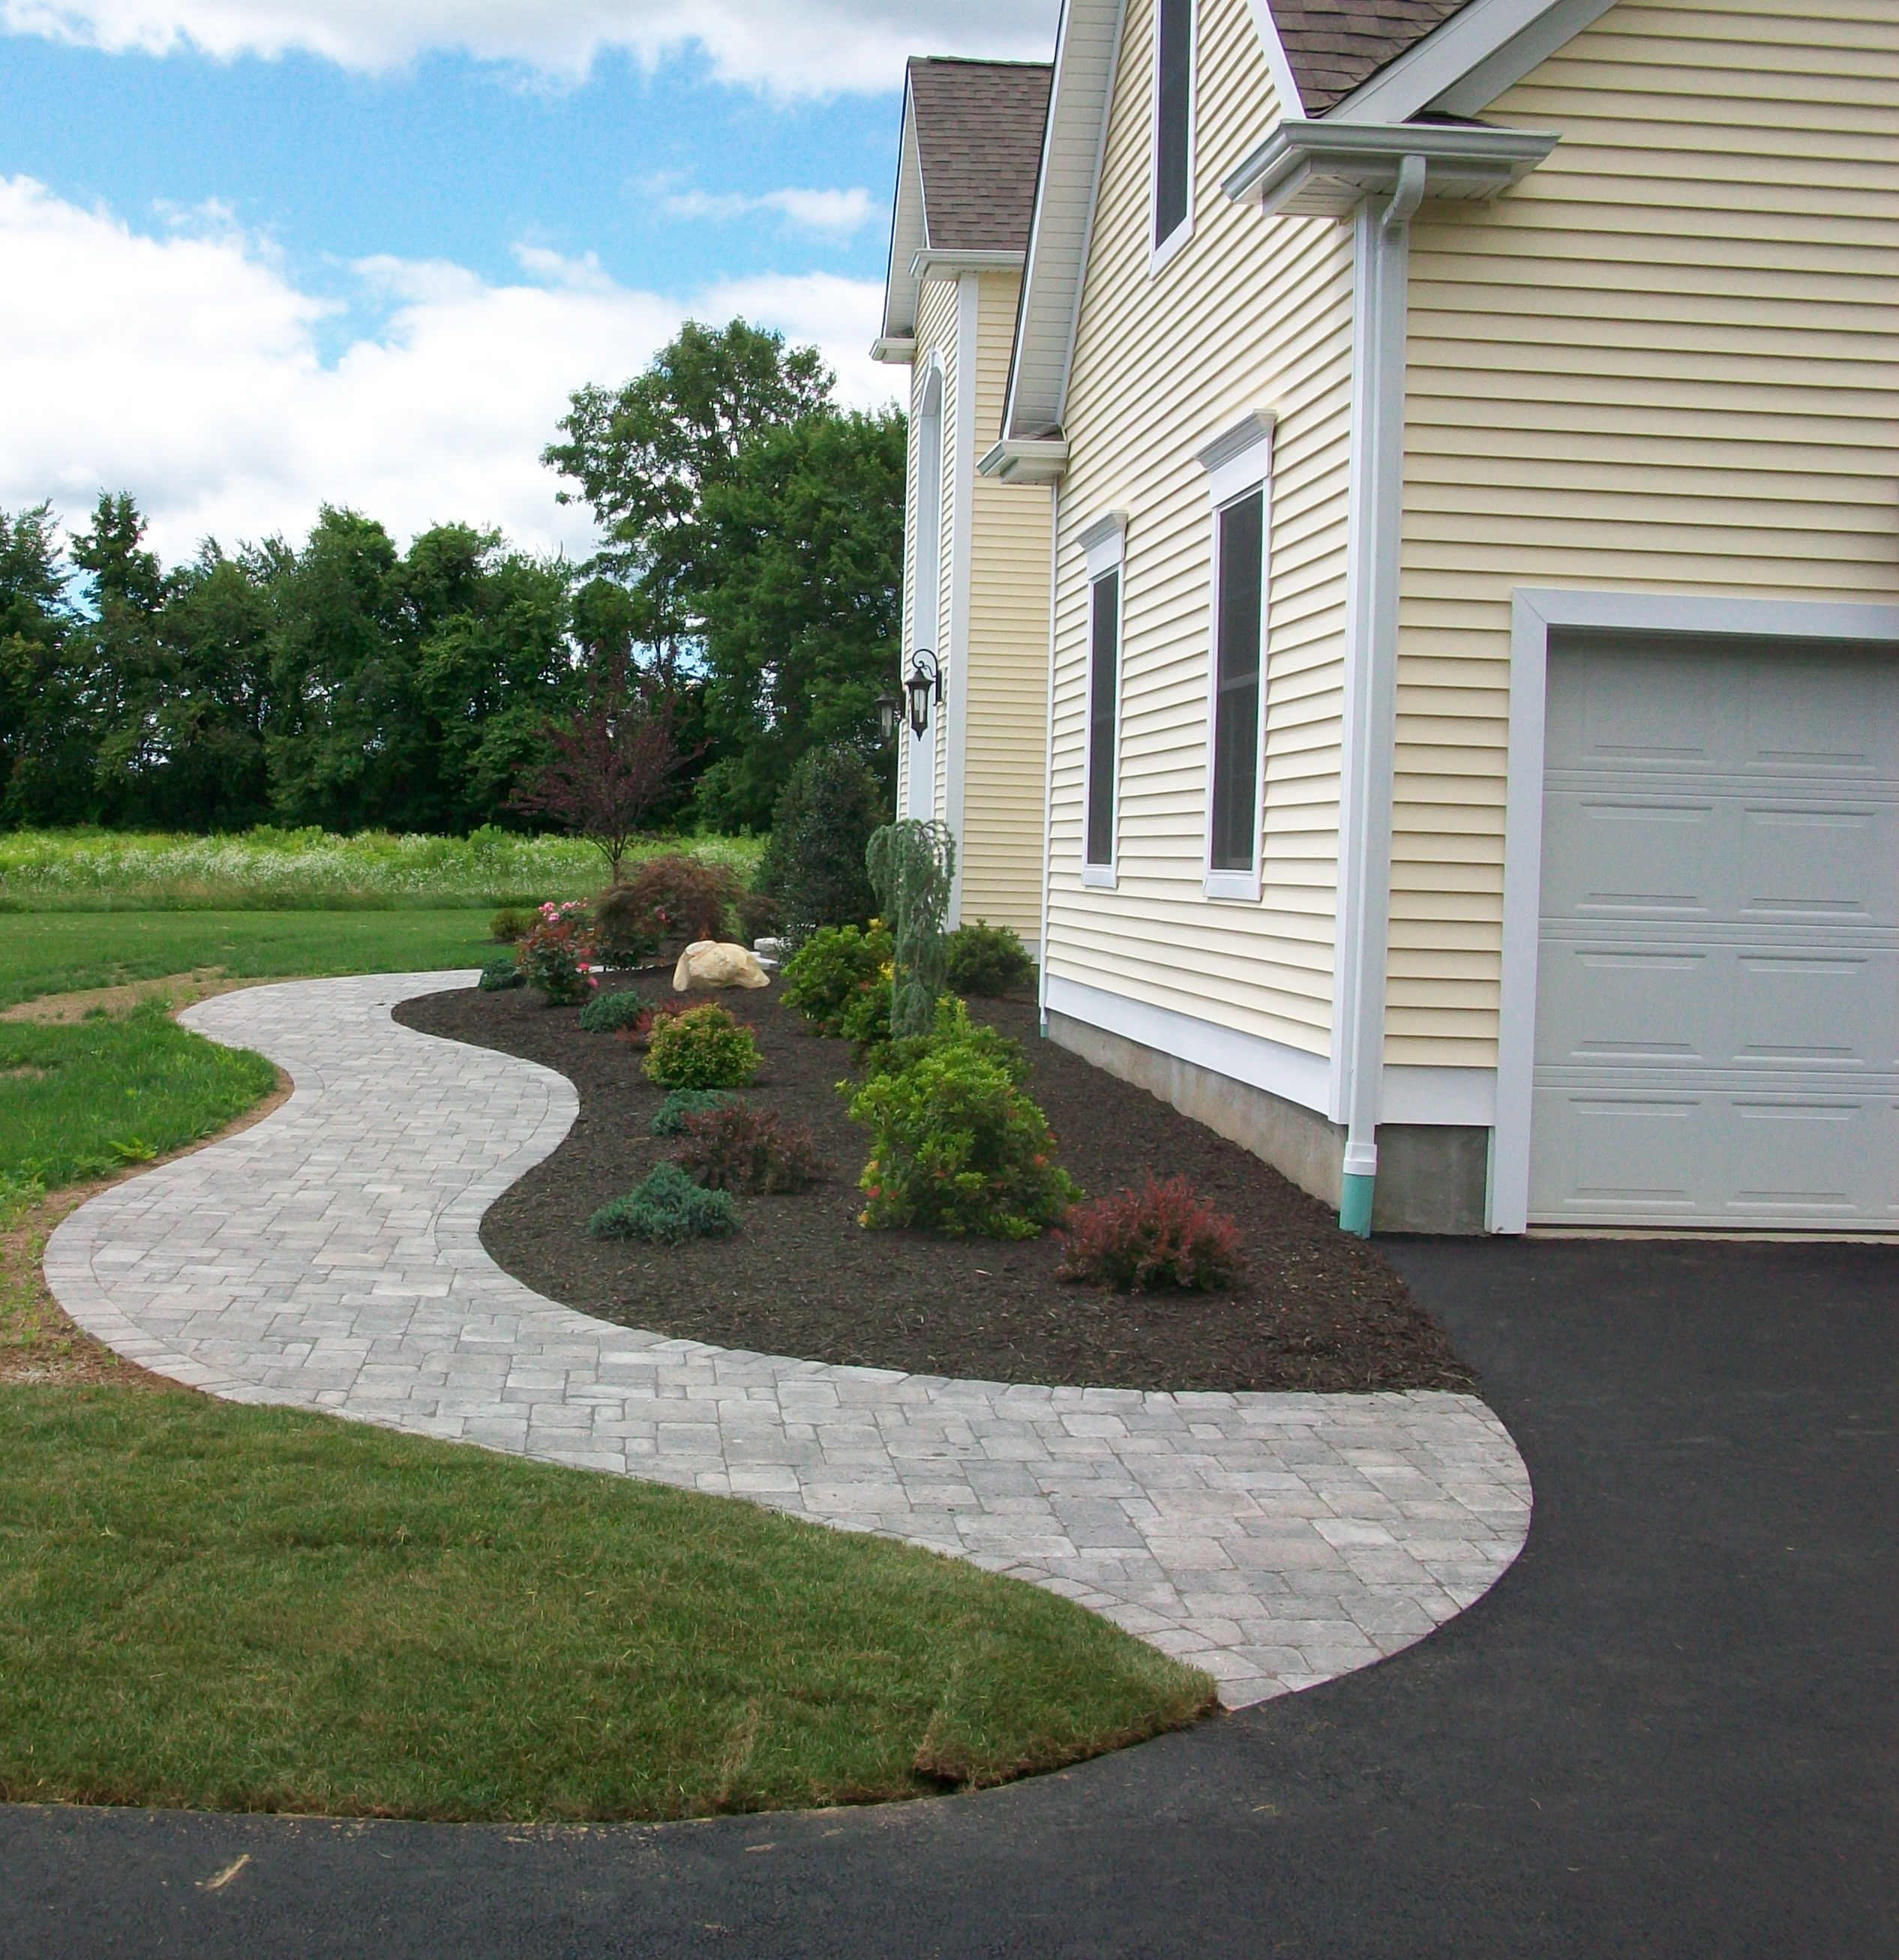 Landscaped Gardens Facility: About Cropley's Landscaping